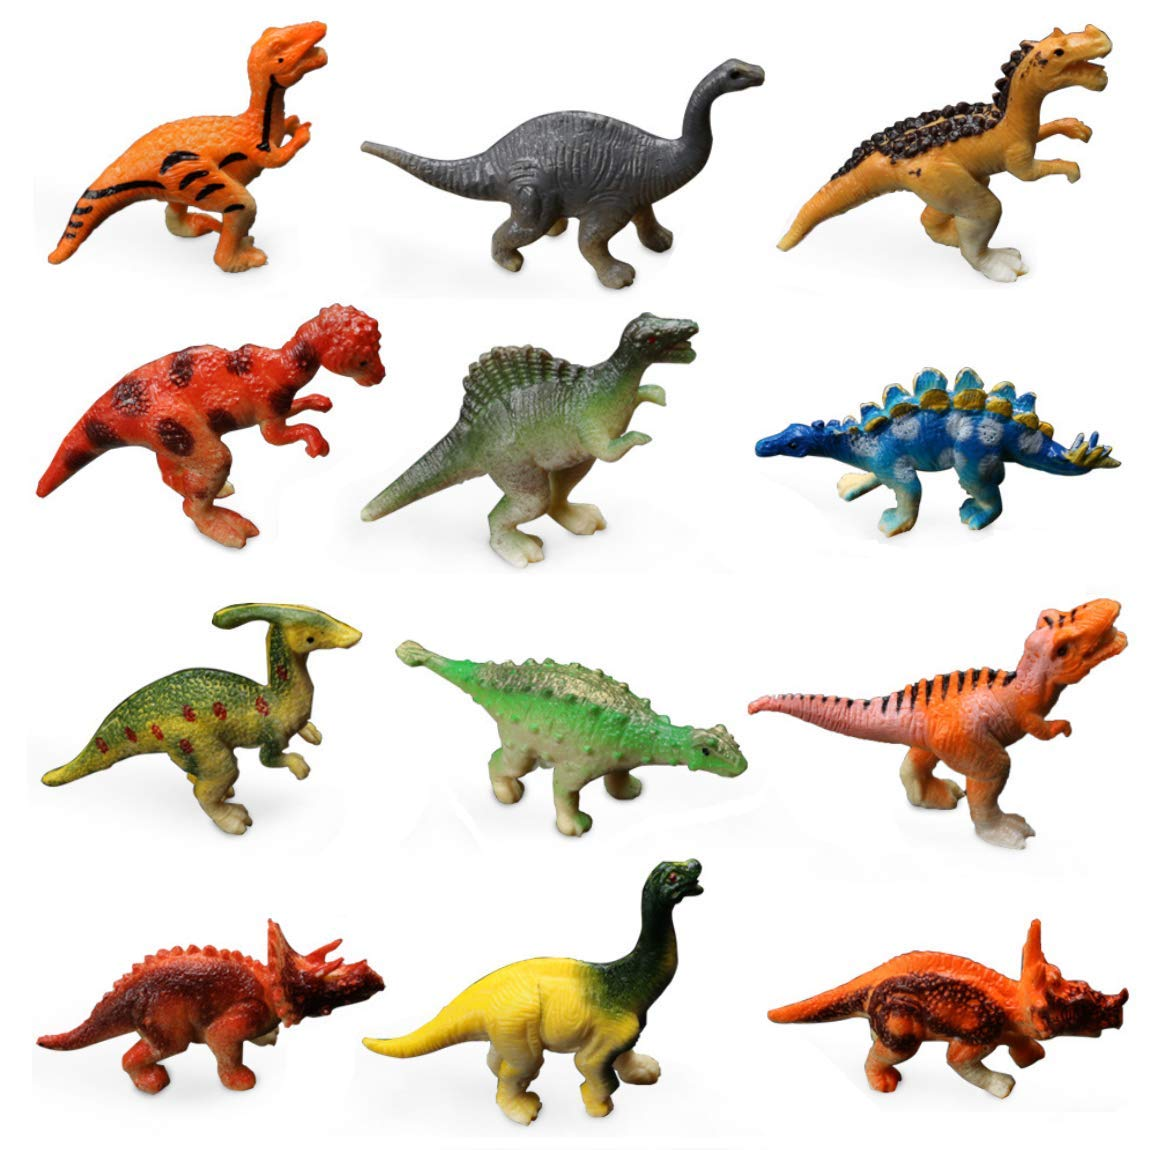 Brown Wildlife Dinosaur Model Toy Realistic Animal Action Figure Toys for Kids and Toddlers Education Zooawa Figure Triceratops Dinosaur Toy